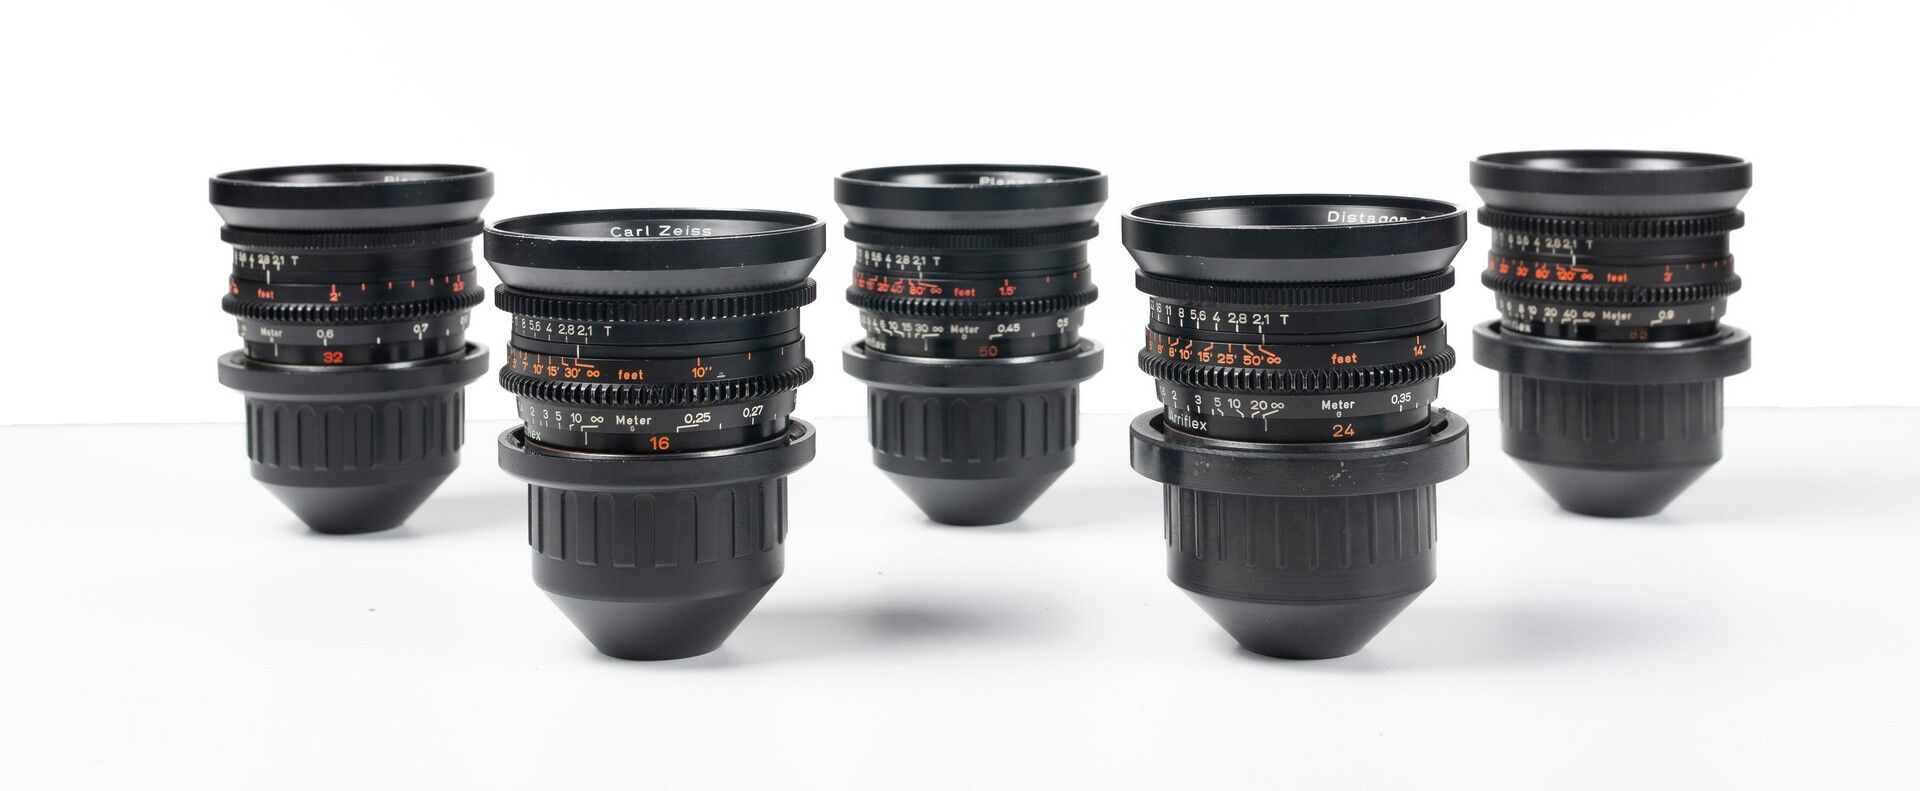 Zeiss Standard Prime T2.1 16, 24, 32, 50 85mm set - Image #1